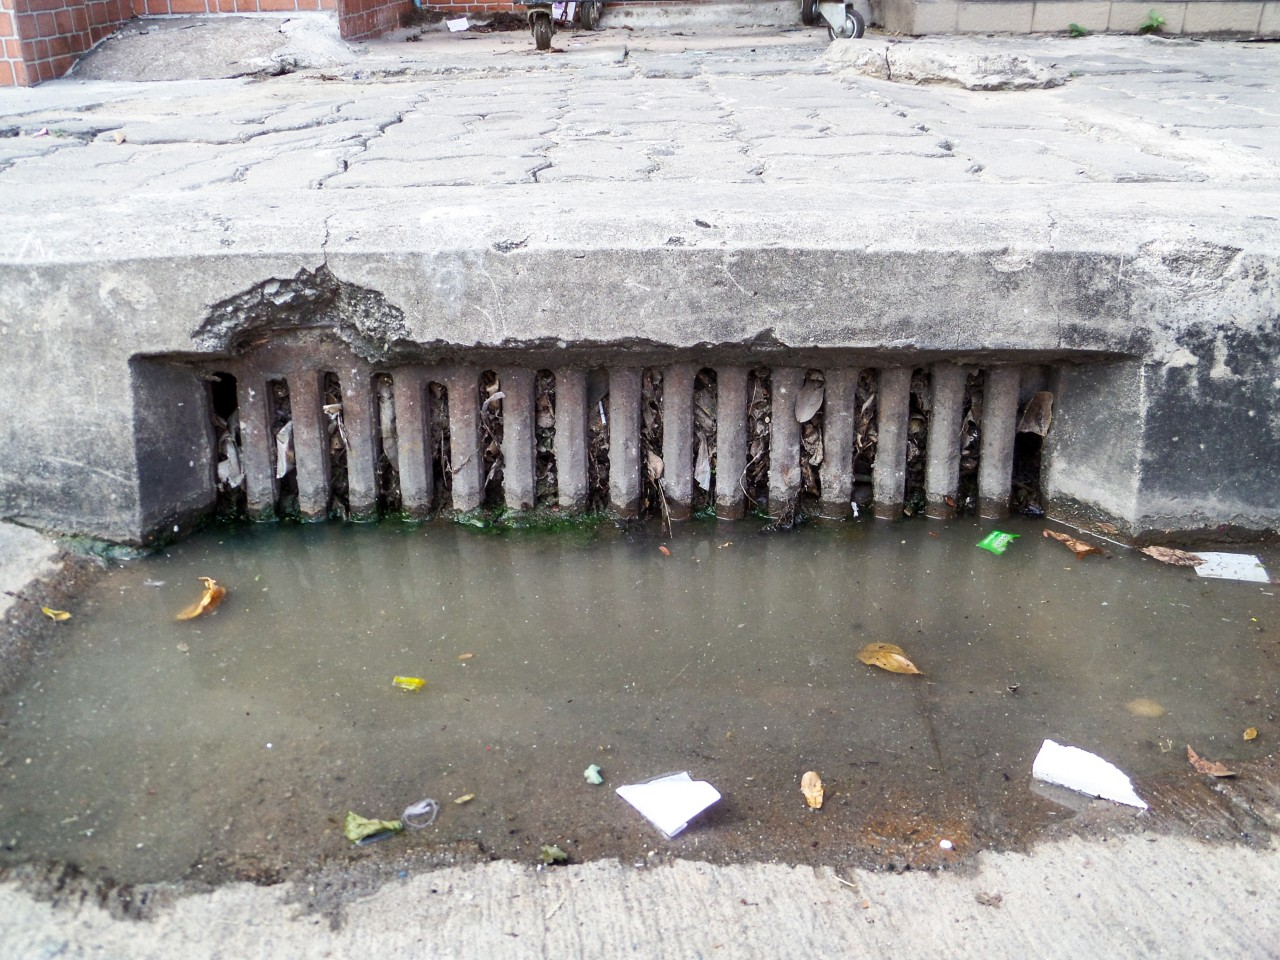 water cannot drain because drainage clogs by waste and garbage and dry leaves